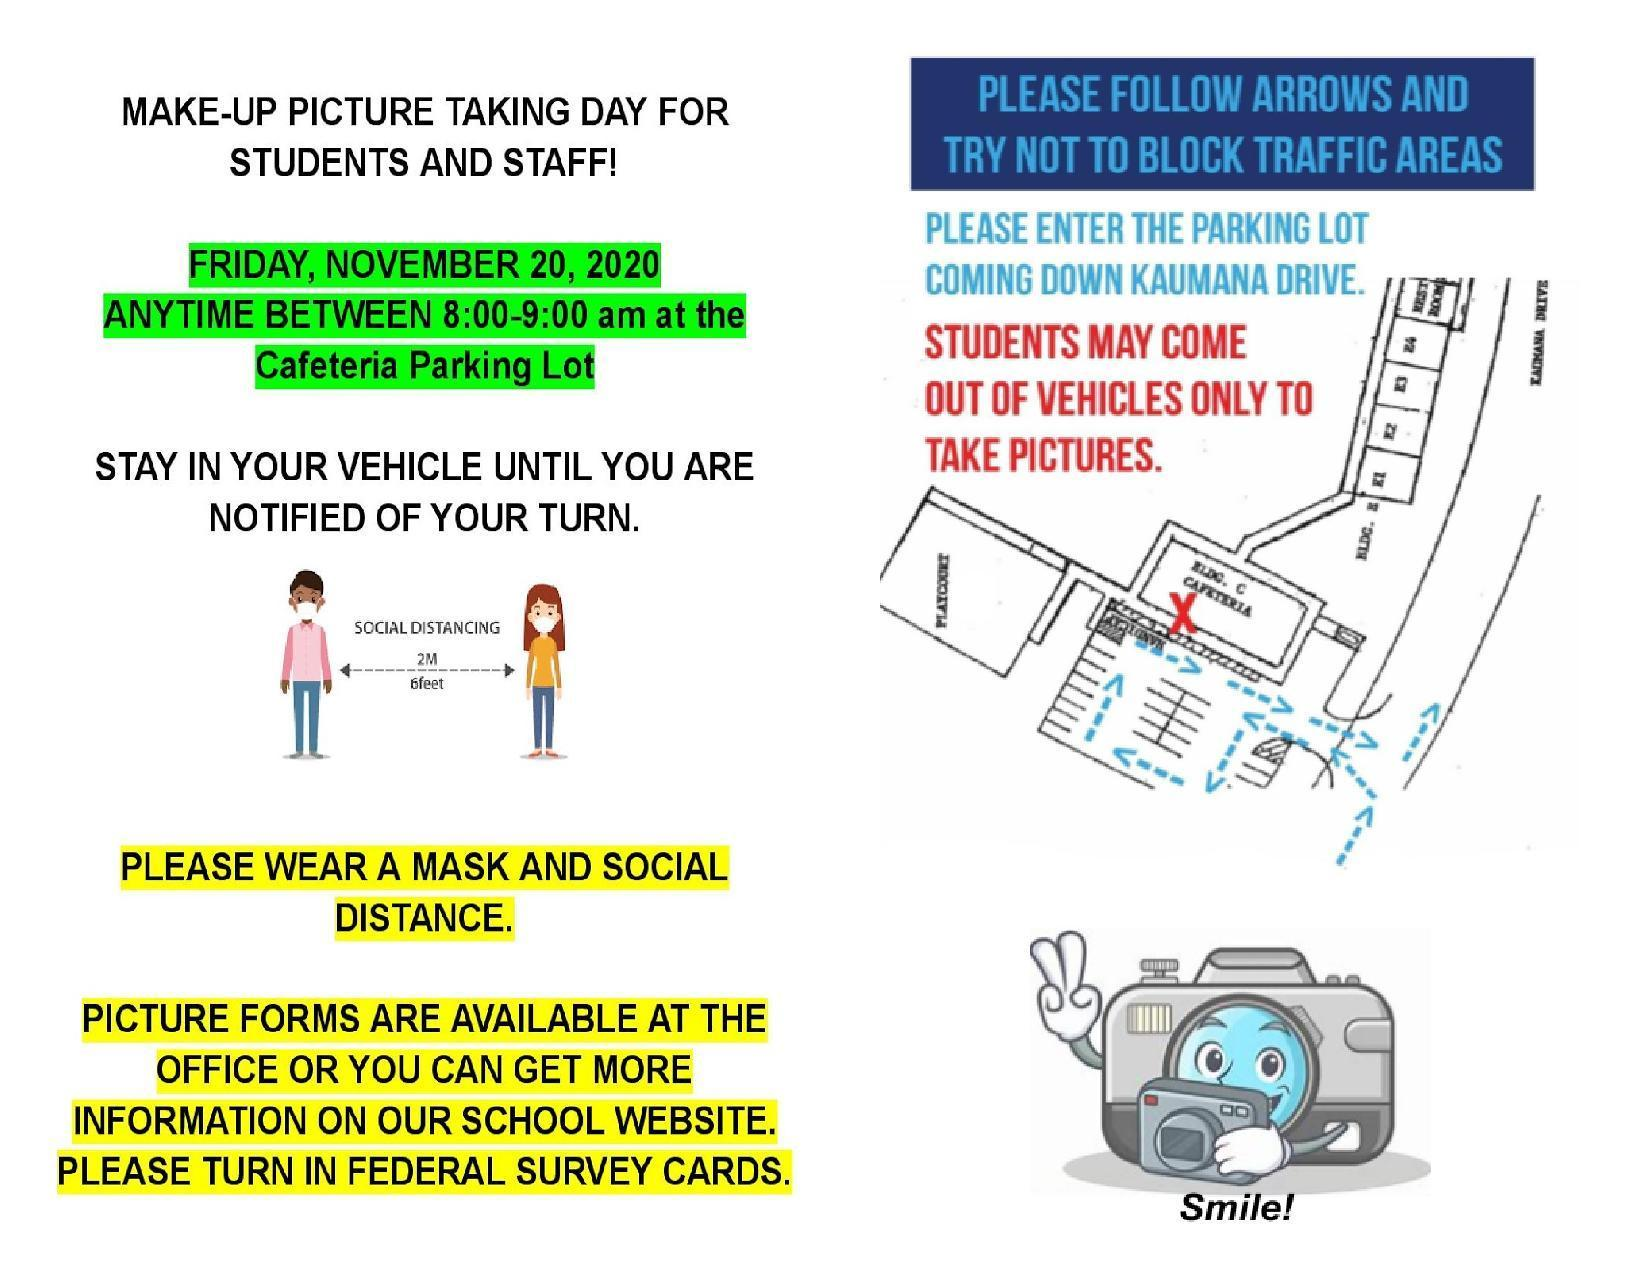 Make Up Picture Taking Day will be on Friday, November 20